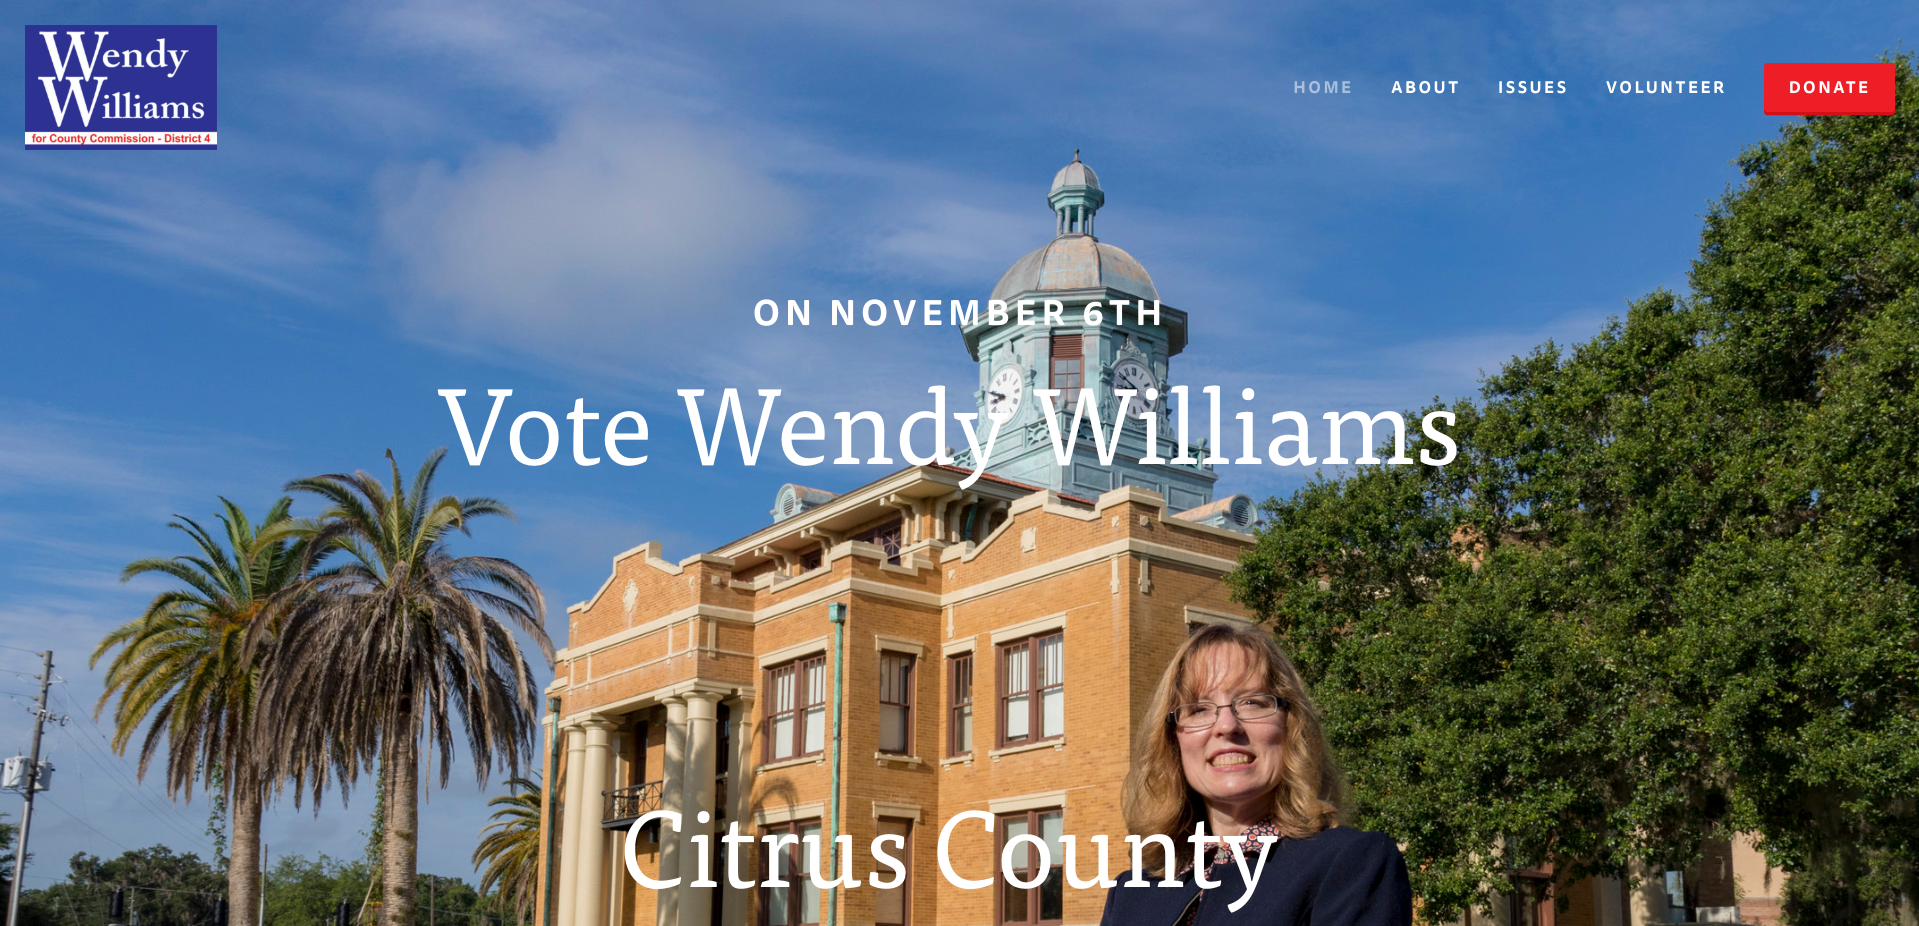 Home page for Wendy Williams' website. She removed her site after her election.